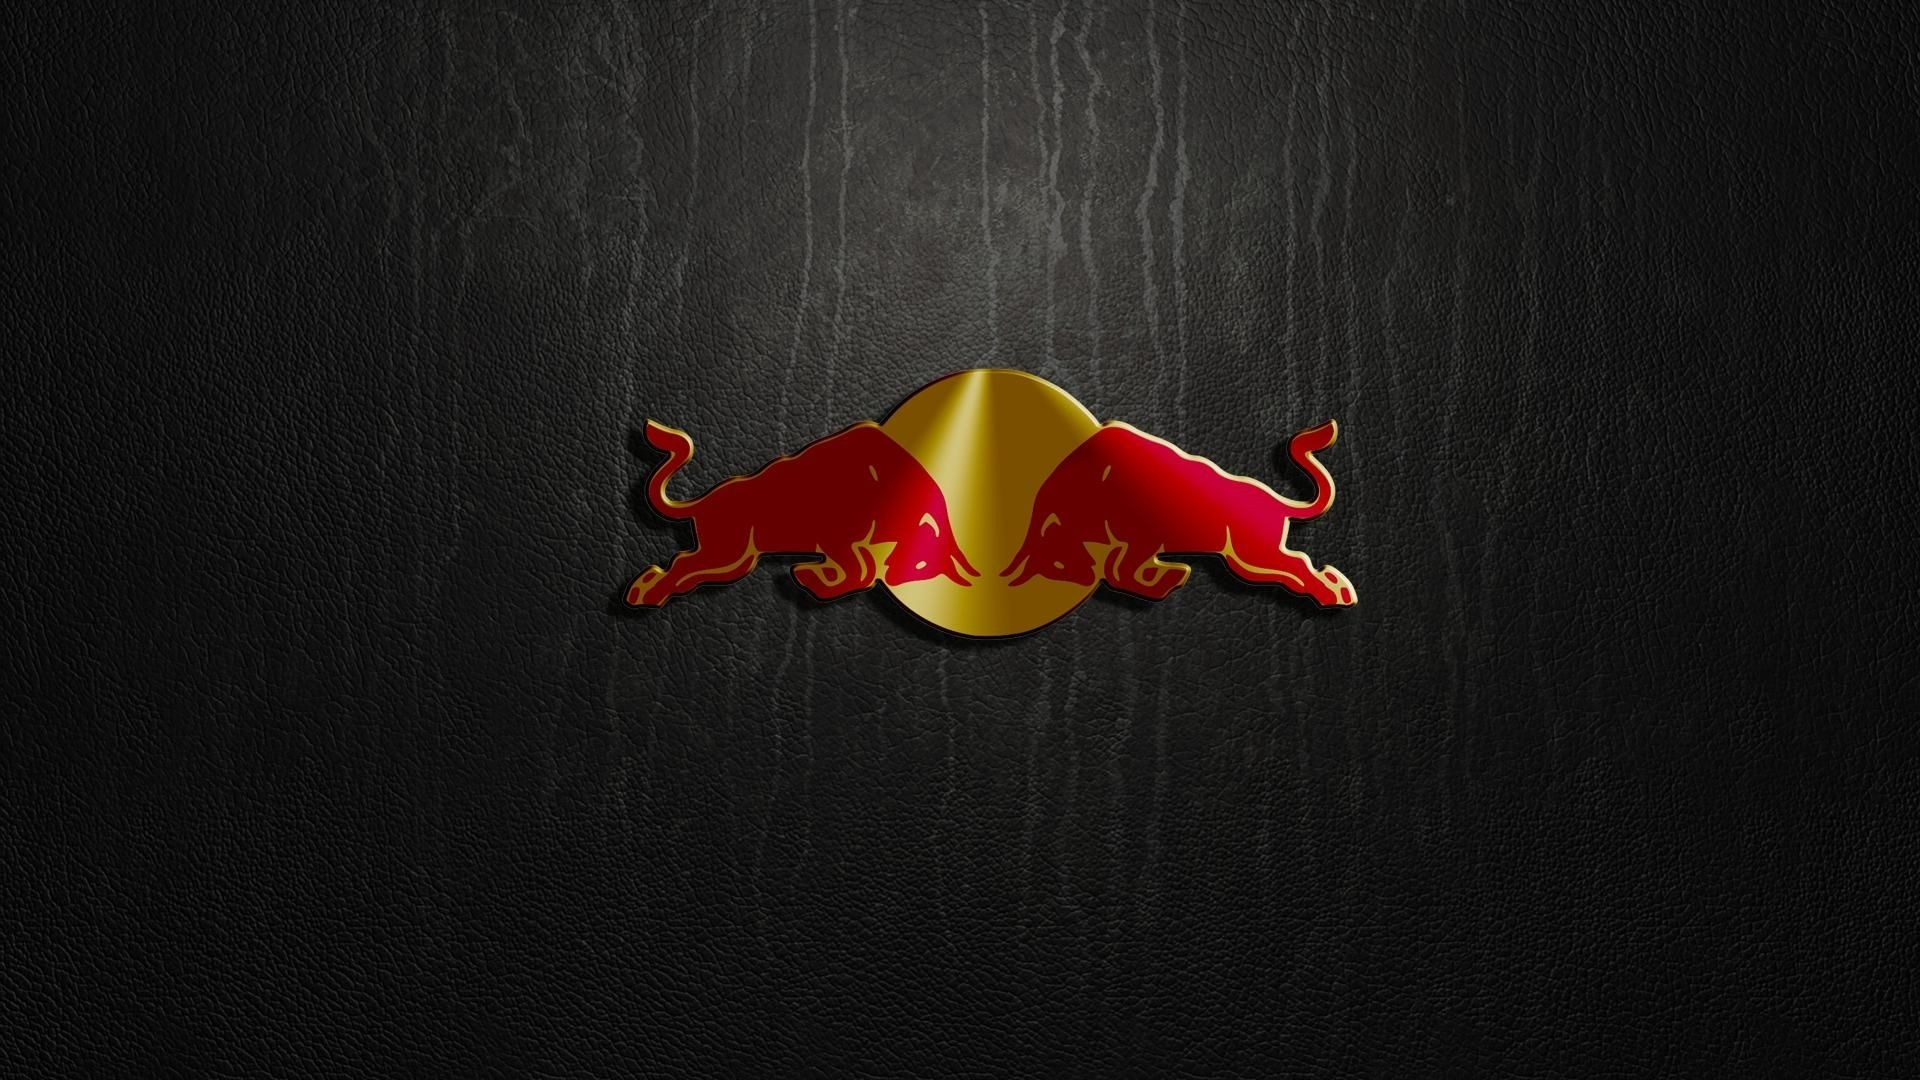 red bull logo wallpaper. | hd wallpapers | pinterest | bulls